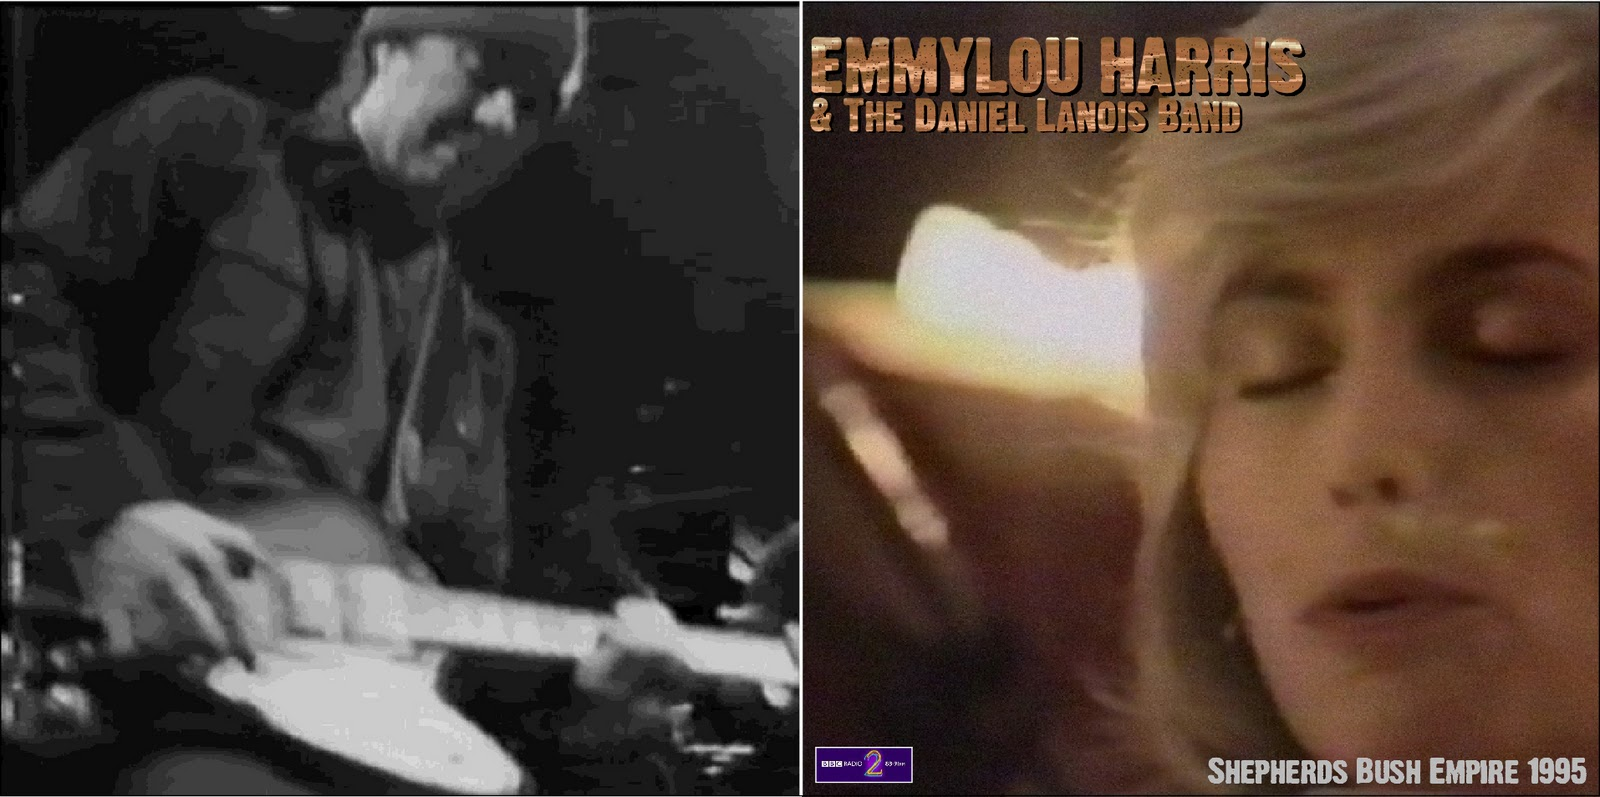 Harris & The Daniel Lanois